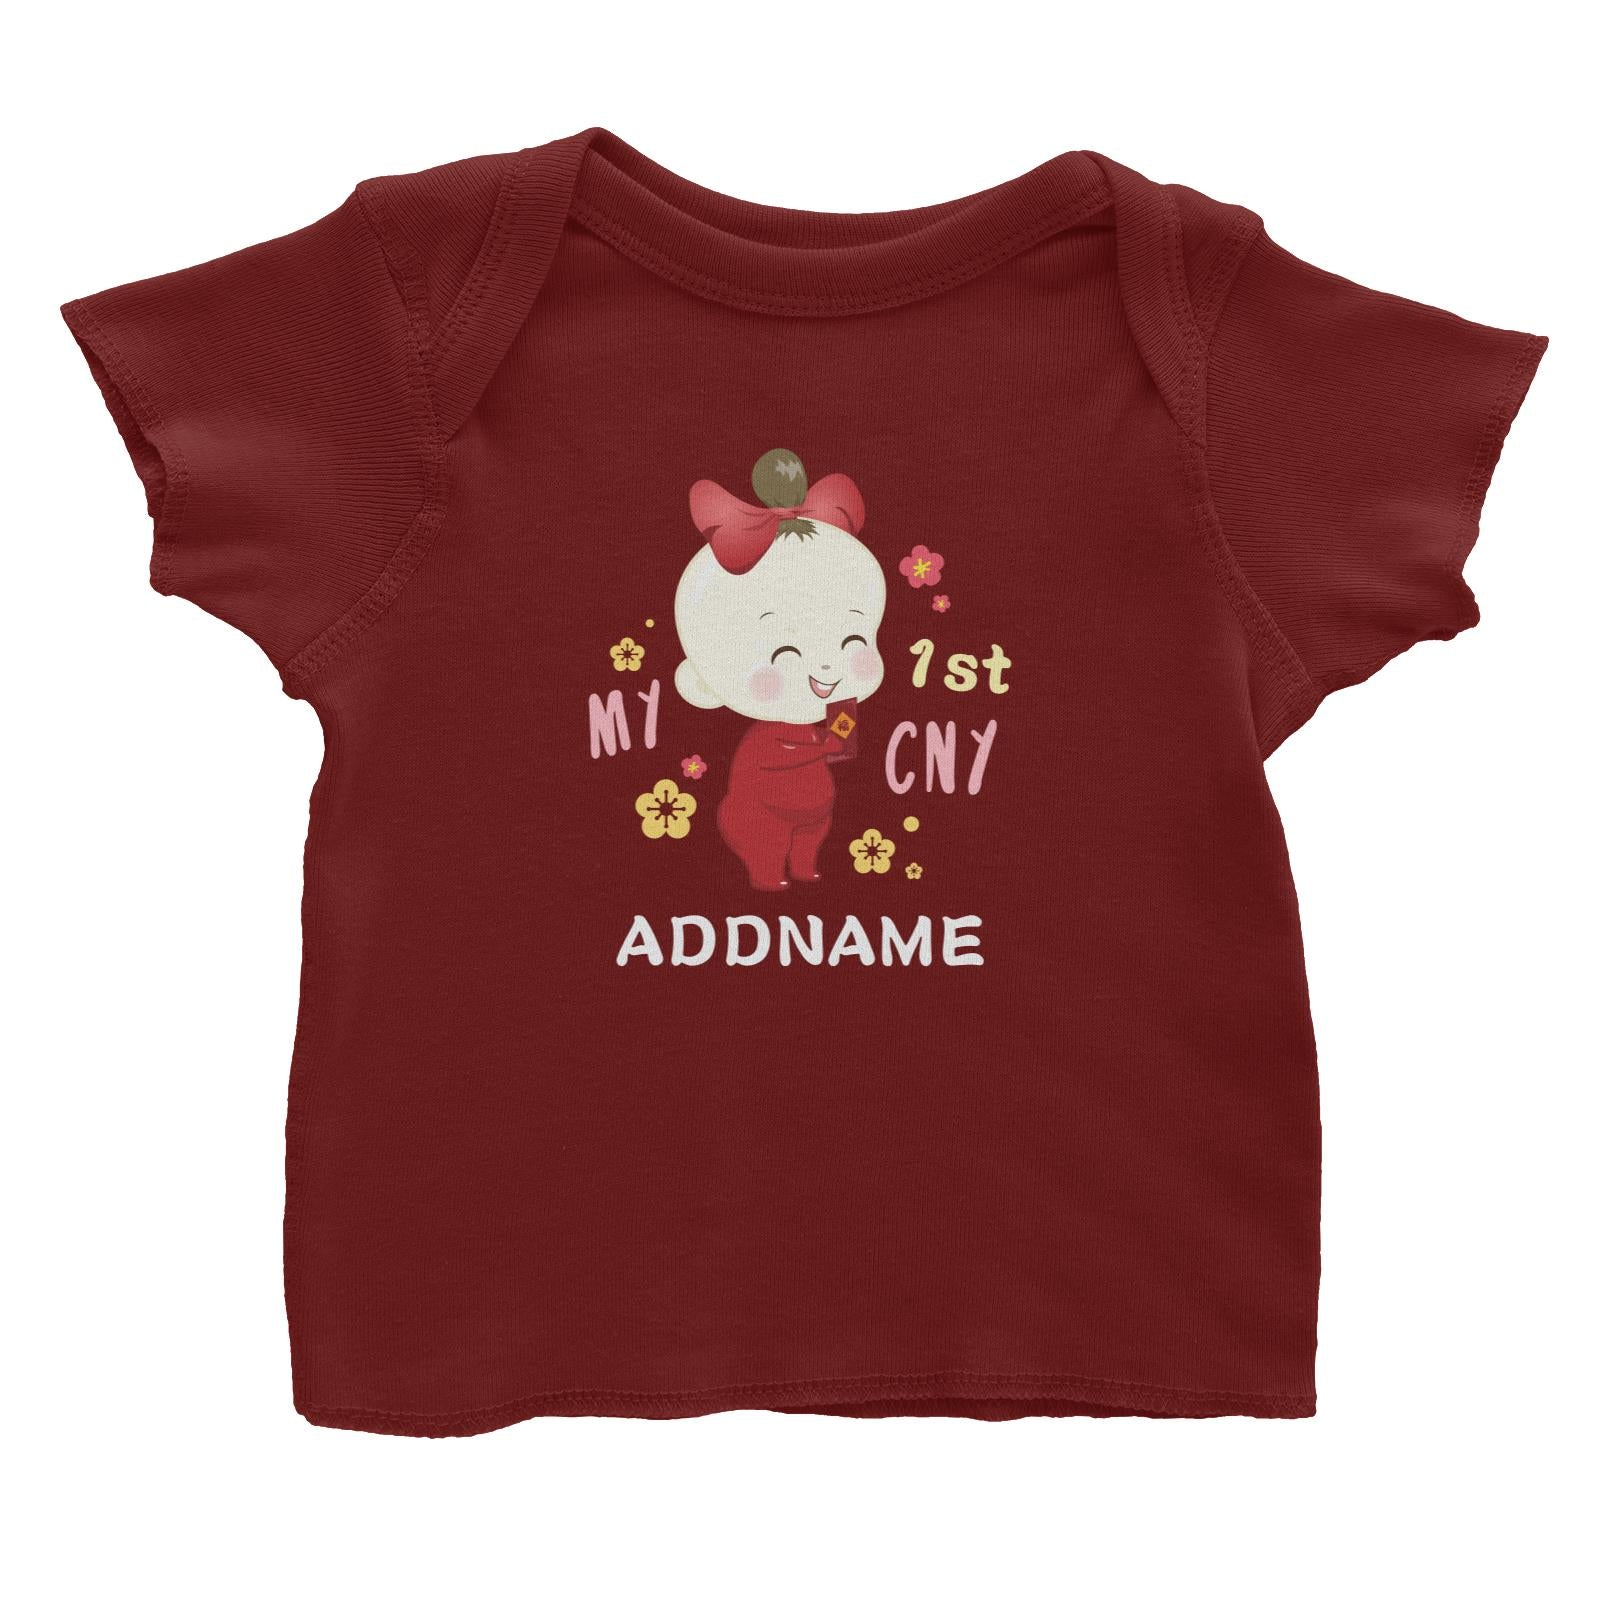 Chinese New Year Family My 1st CNY Baby Girl Addname Baby T-Shirt